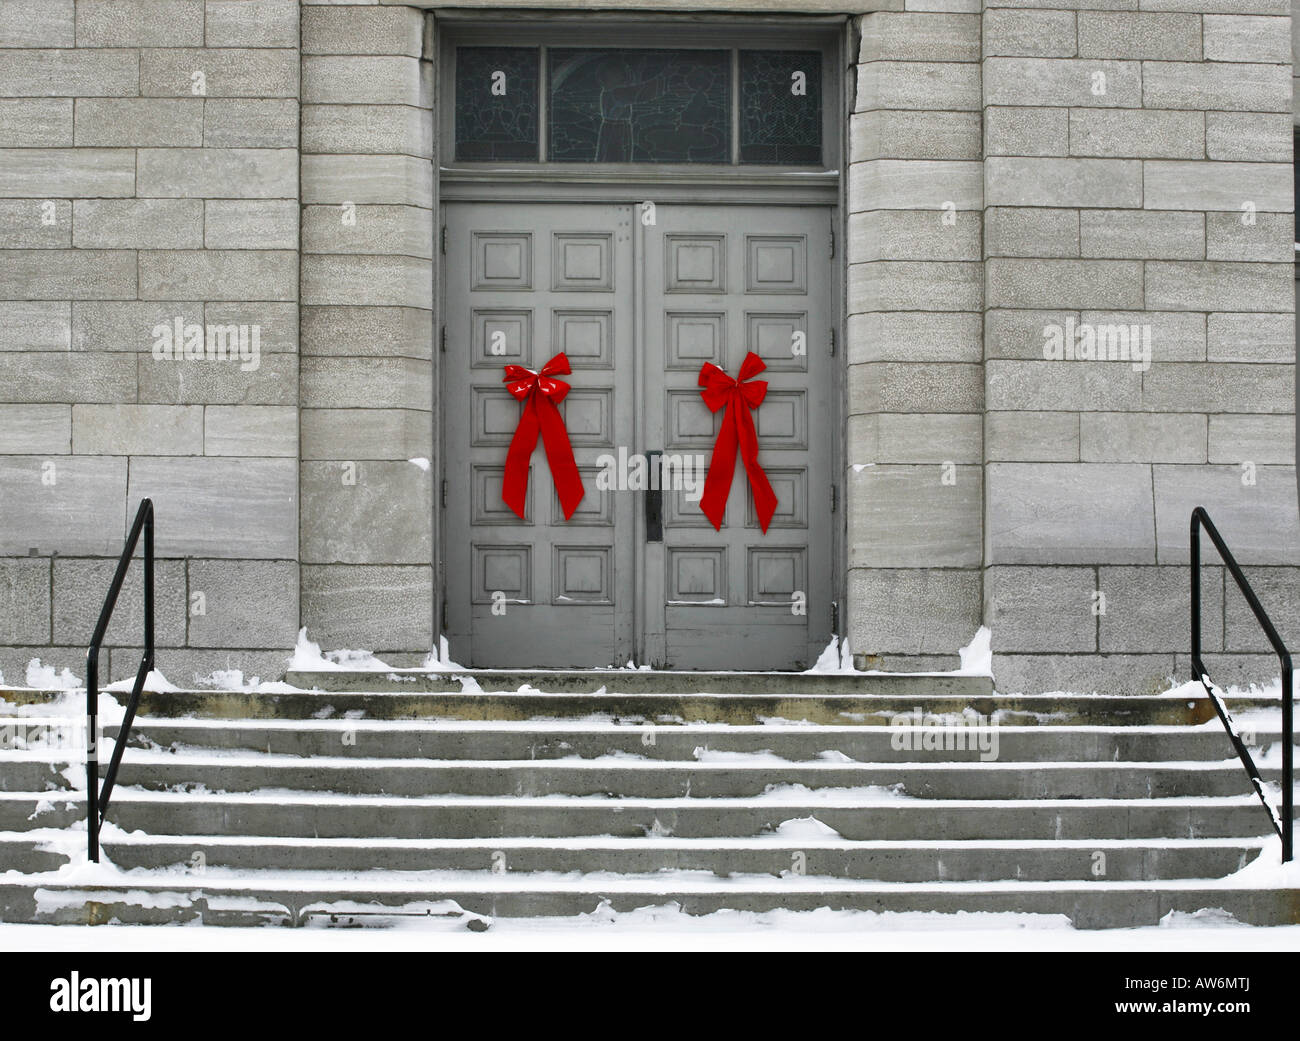 Red bows on doors of a grey building - Stock Image